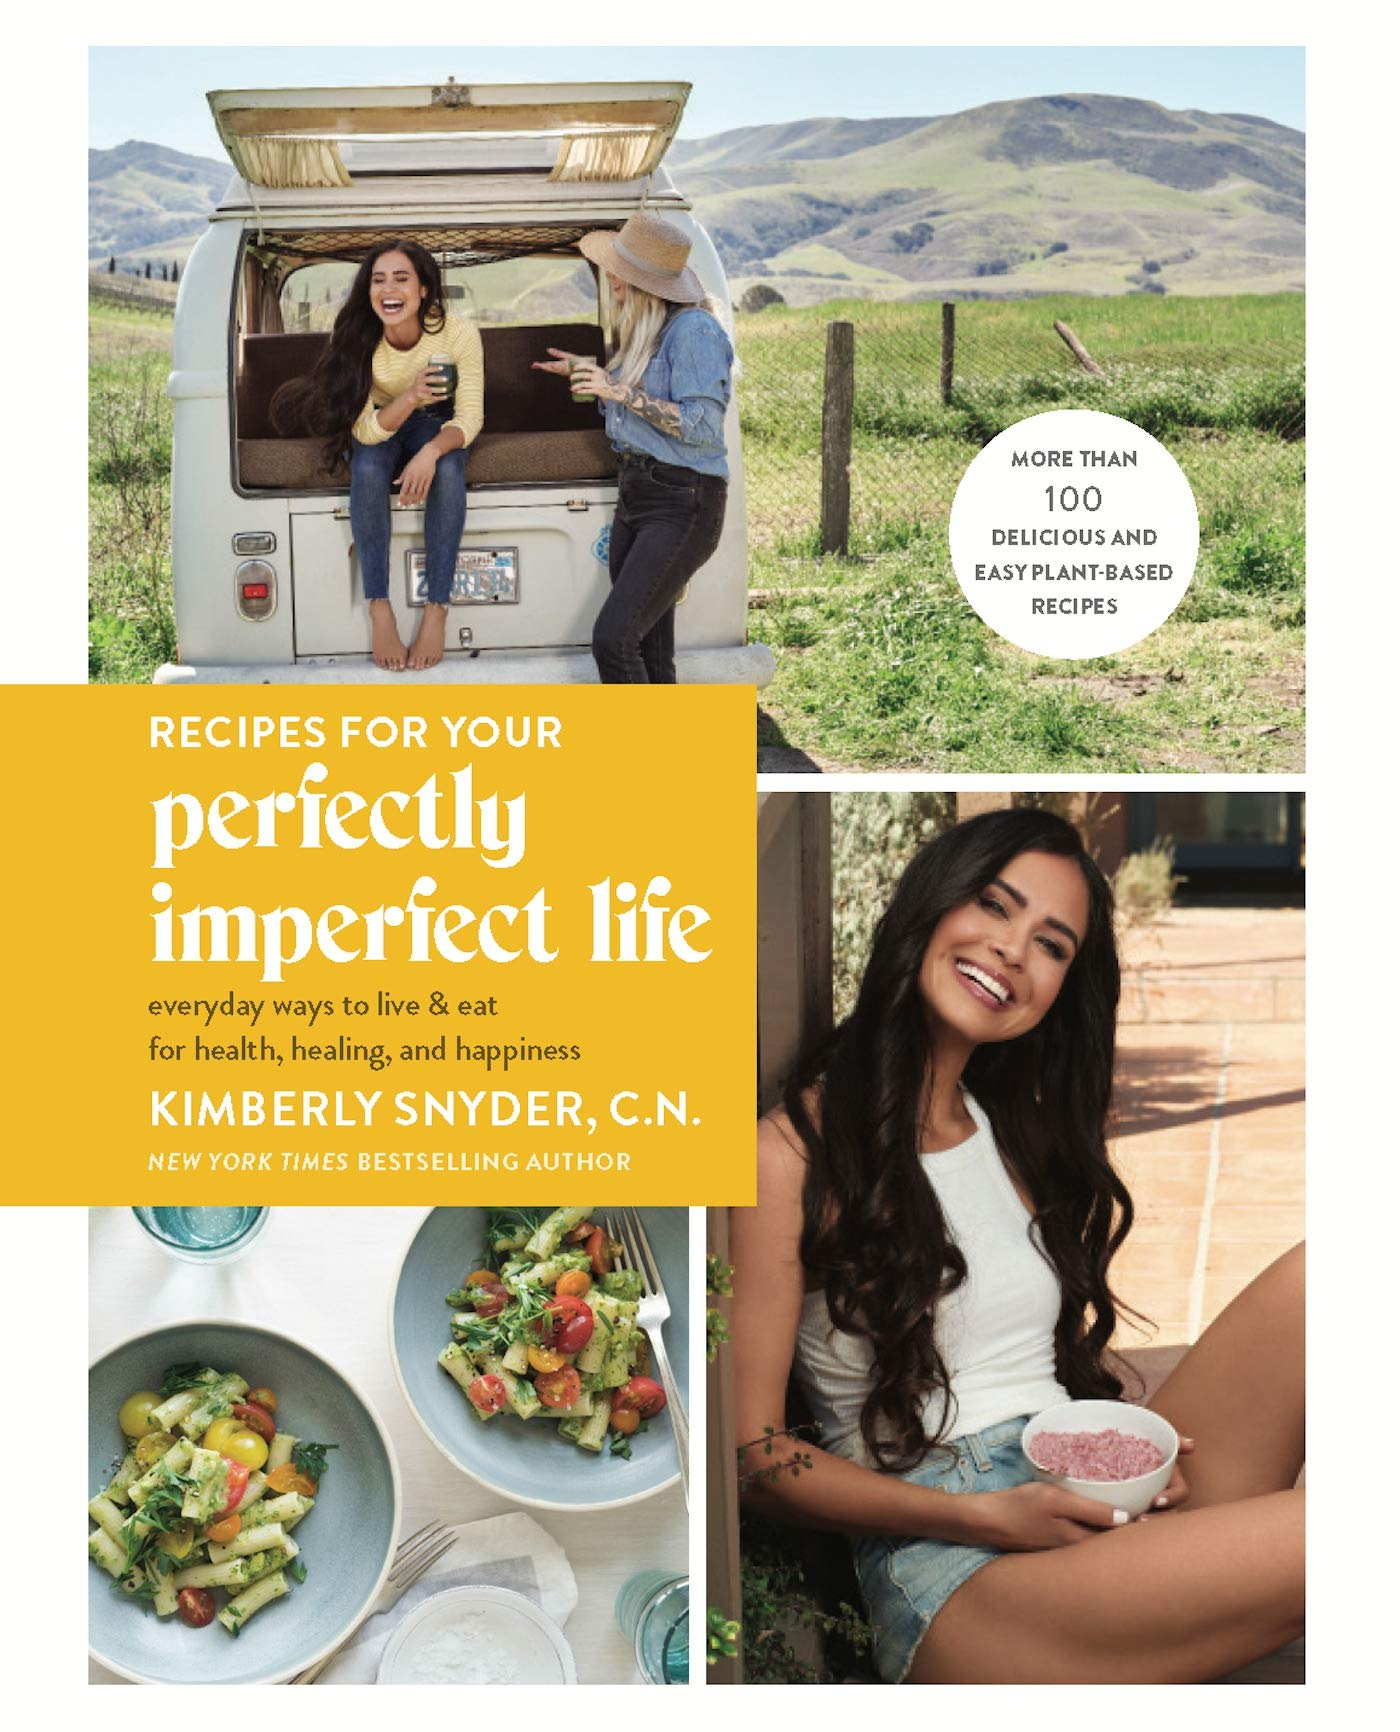 Recipes For Your Perfectly Imperfect Life  Everyday Ways To Live And Eat For Health Healing And Happiness